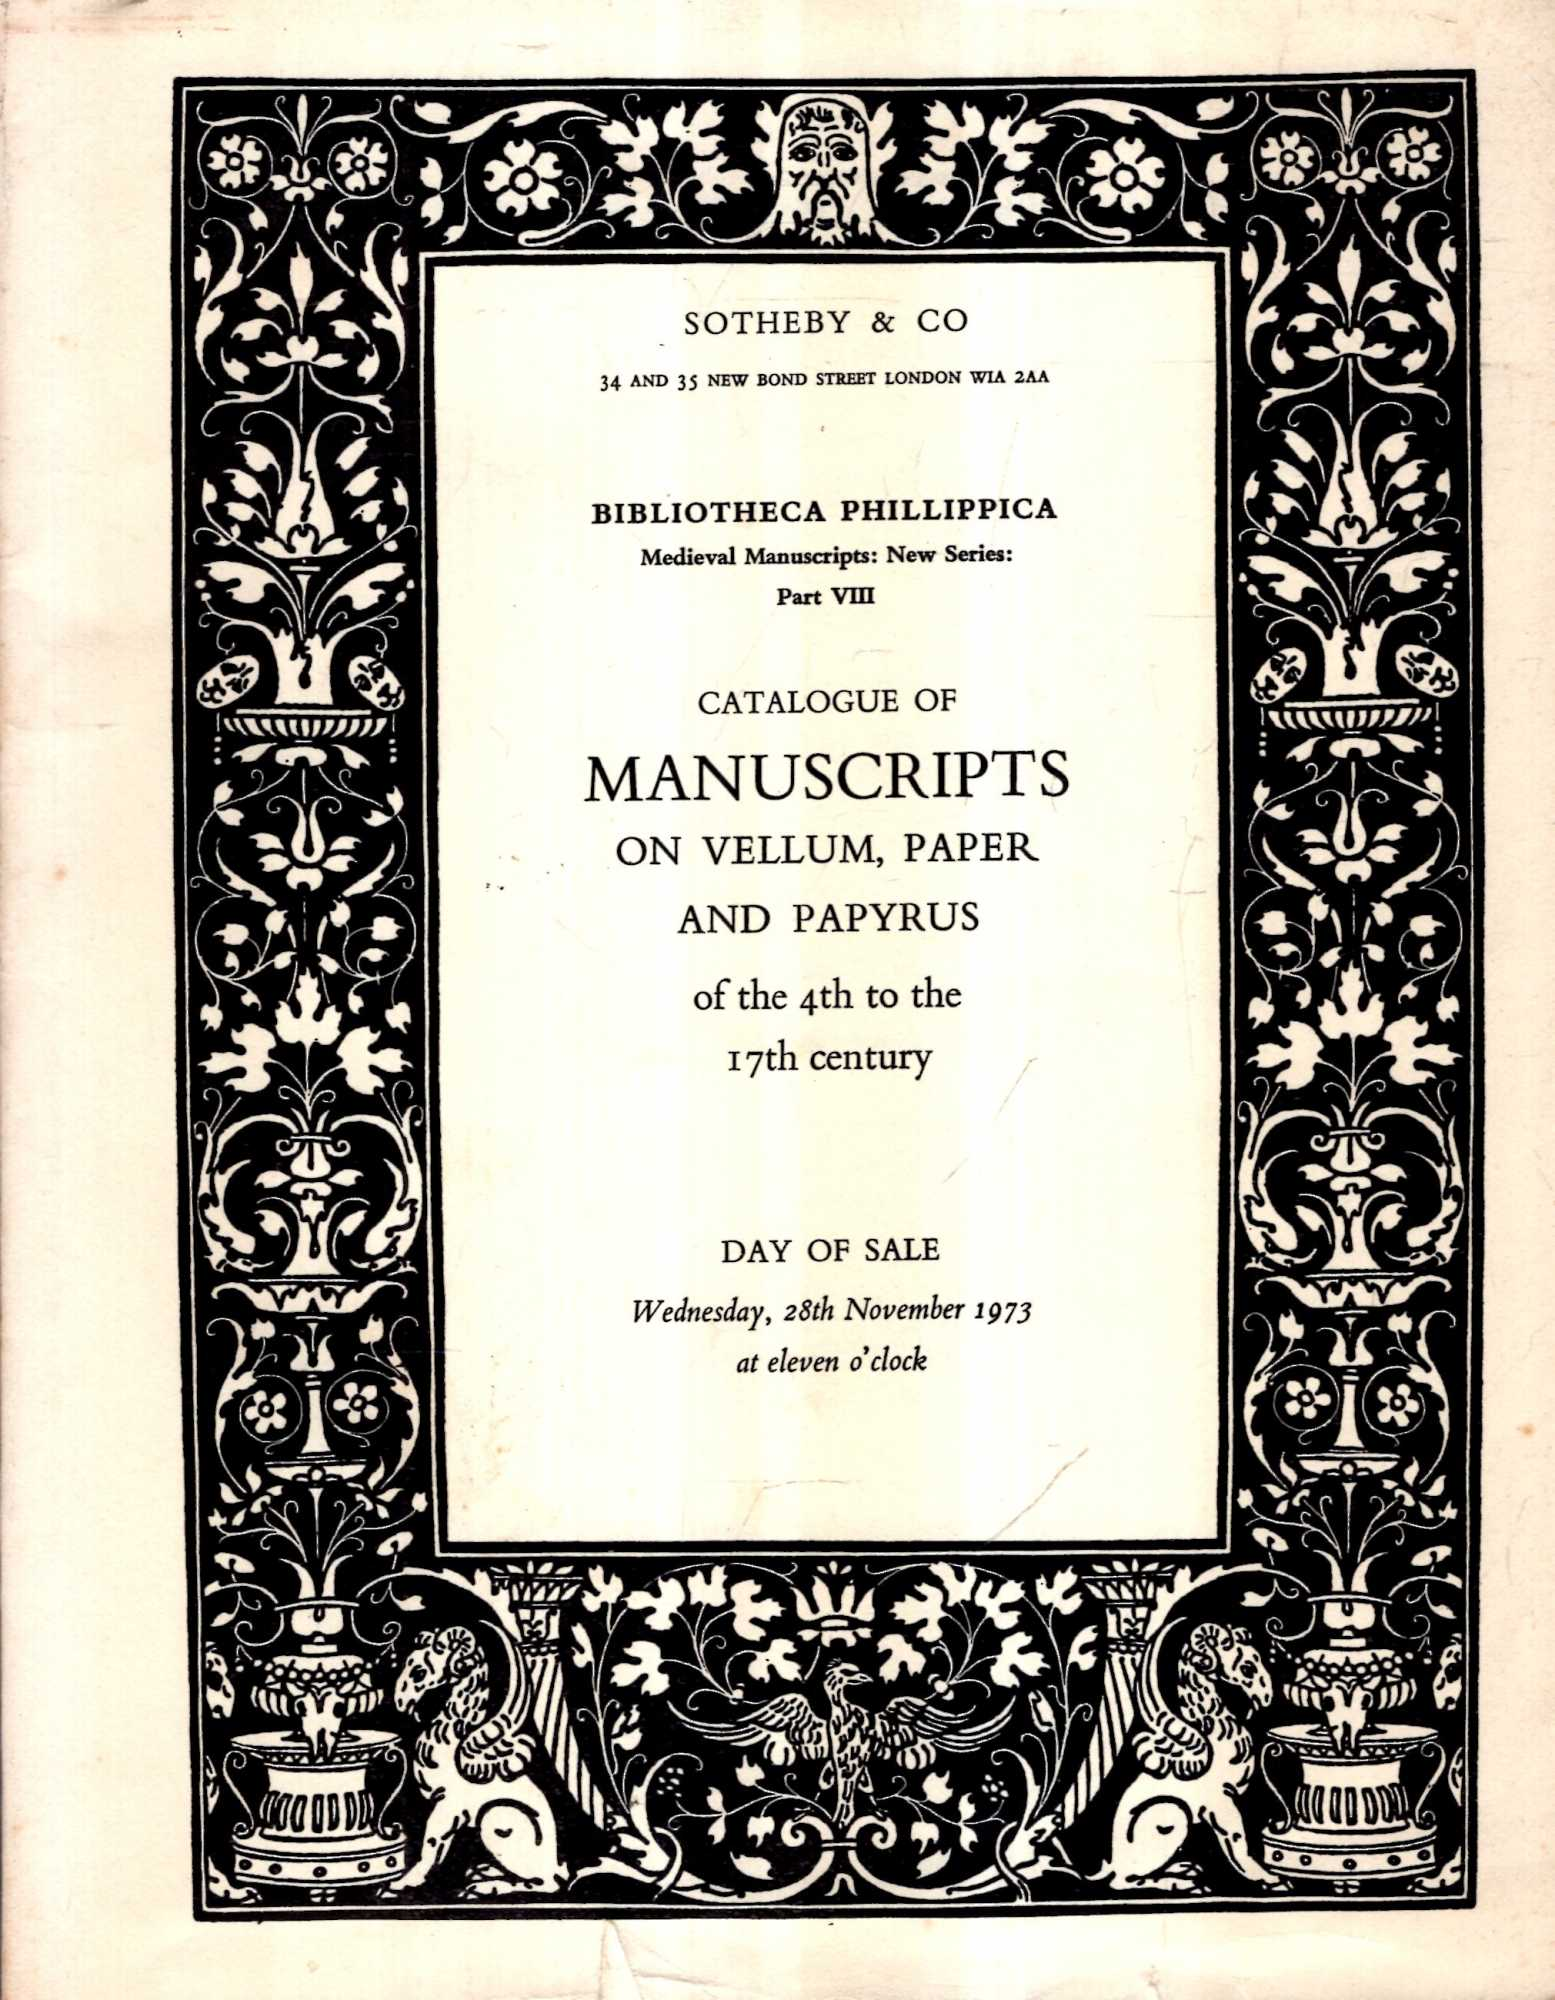 Image for Bibliotheca Phillippica : Medieval Manuscripts: New Series, Eighth Part (viii). Catalogue of Manuscripts on Vellum, Paper and Papyrus of the 4th to the 17th century, 28 November 1973